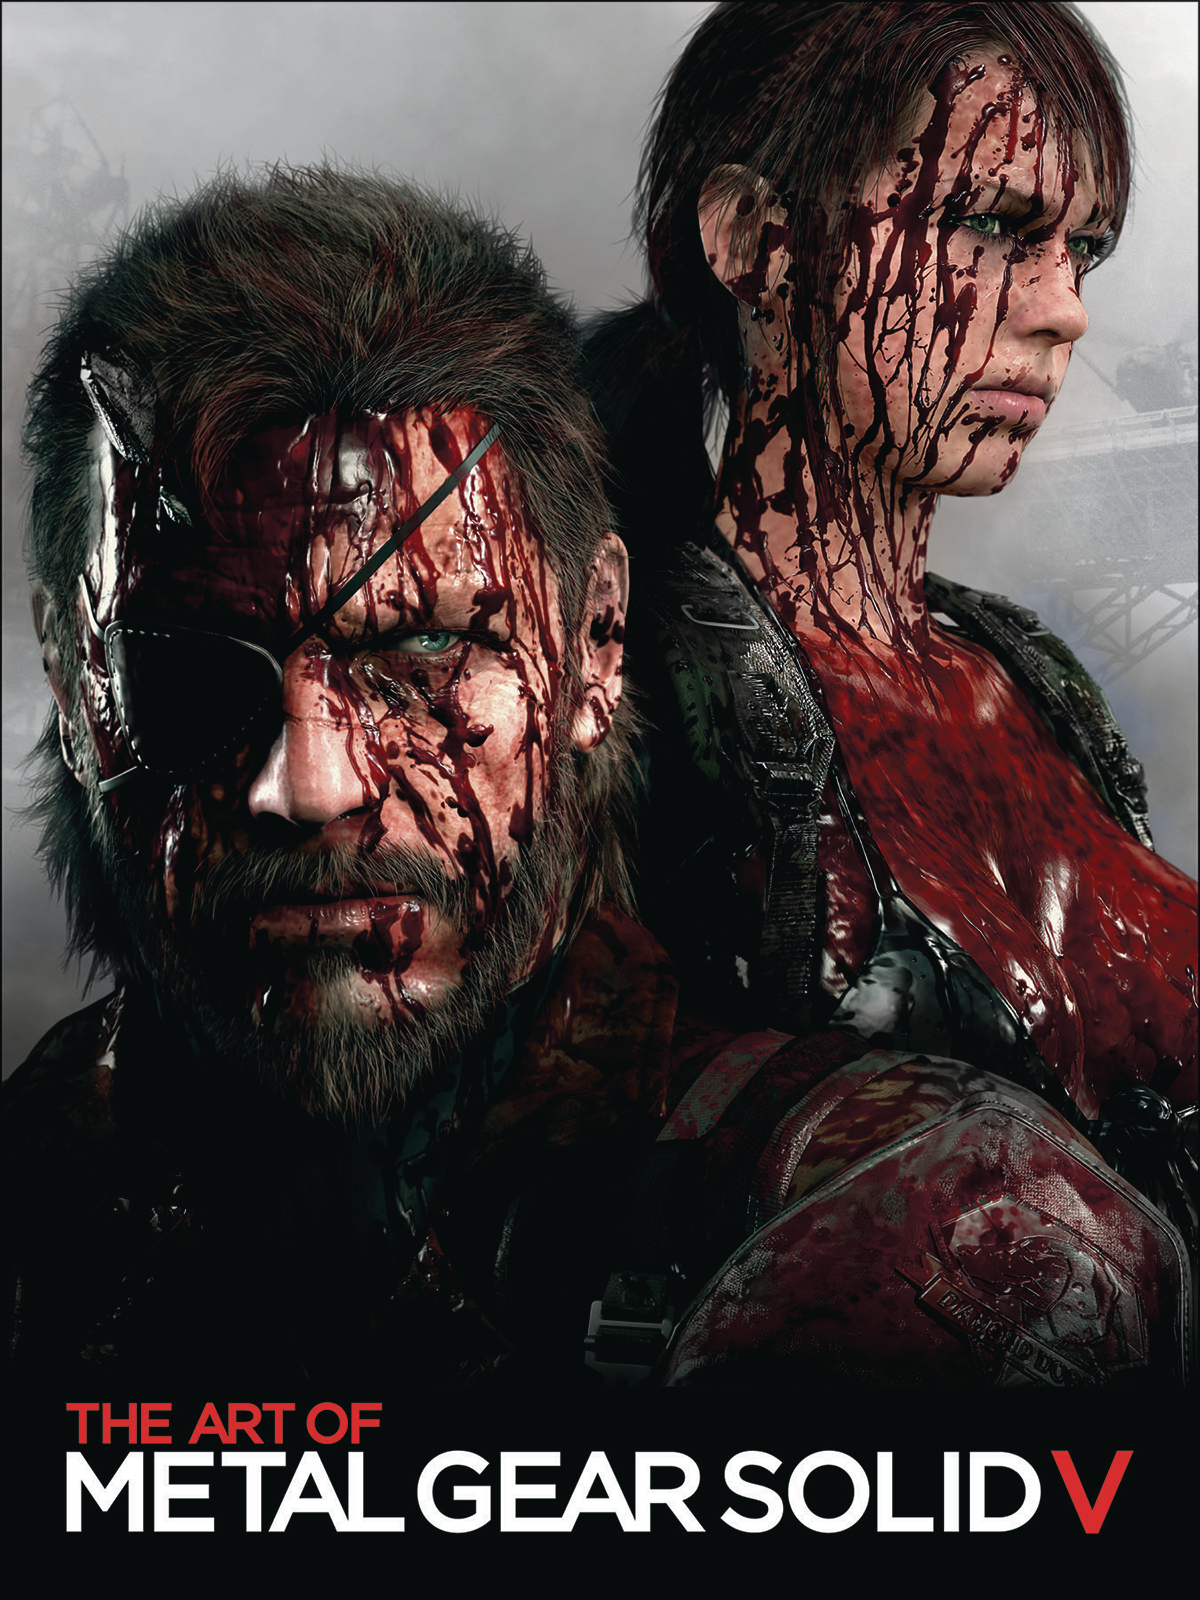 ART OF METAL GEAR SOLID V HC (JUL160156)